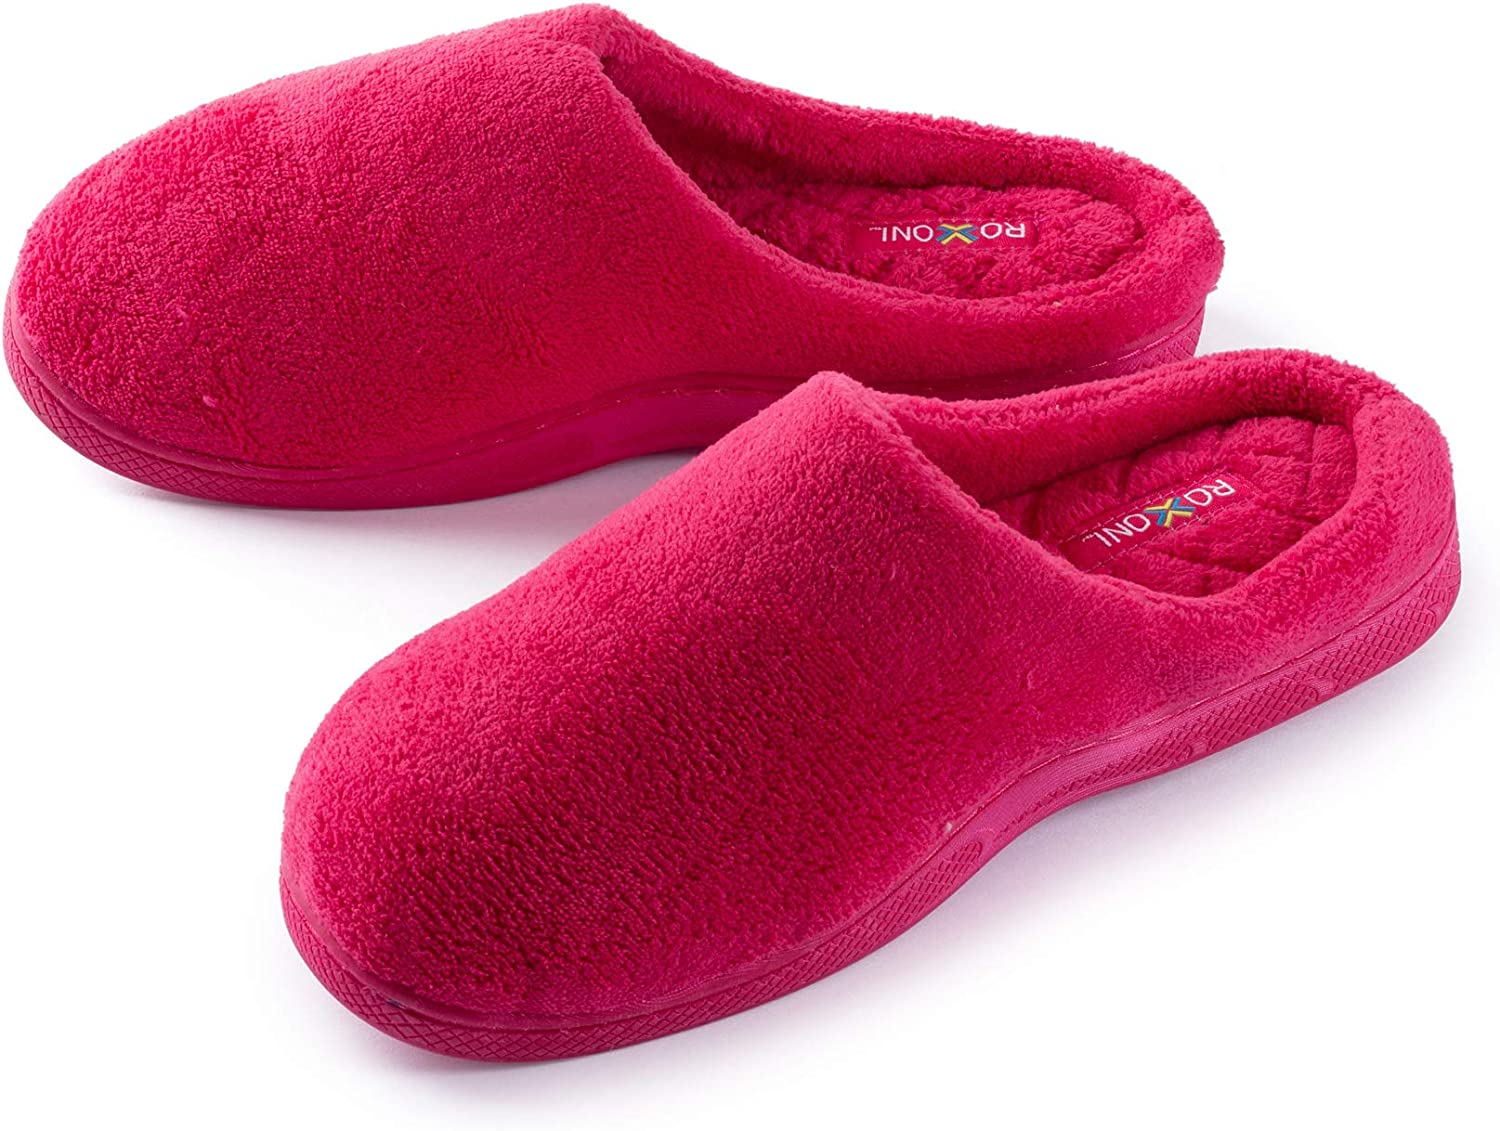 Plush Terry Clog Slippers